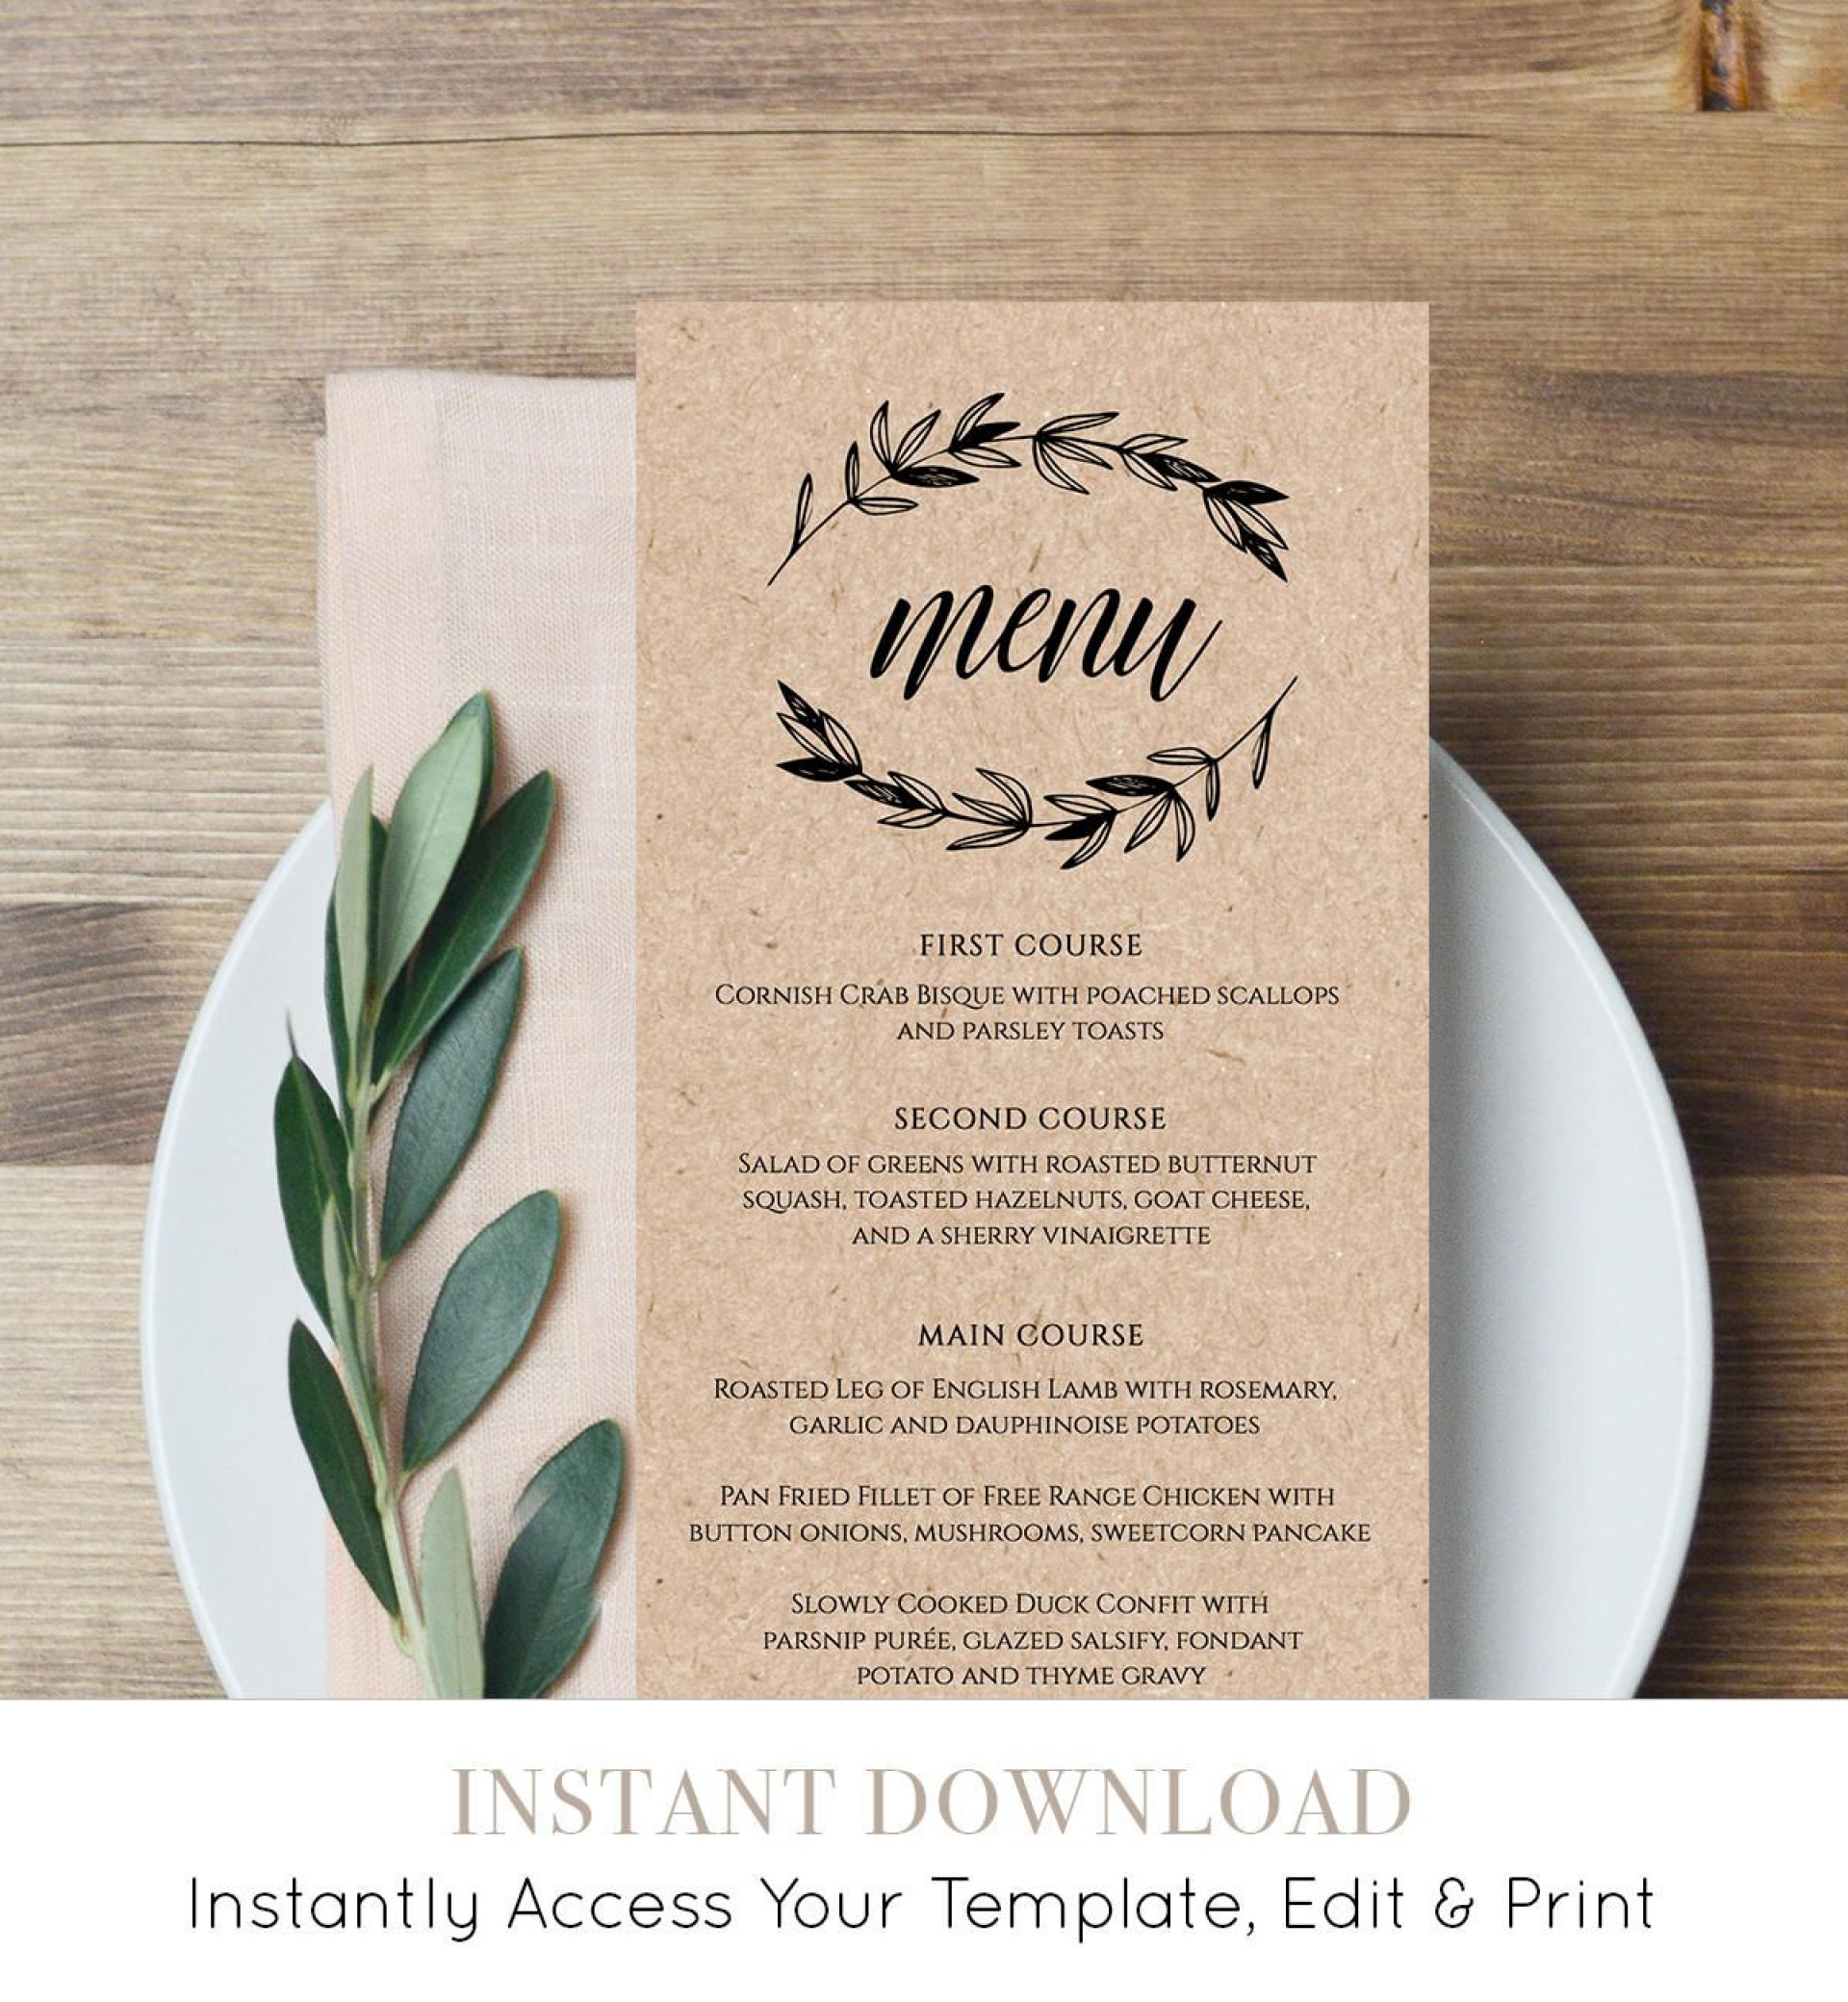 006 Awesome Free Online Wedding Menu Template Concept  Templates1920